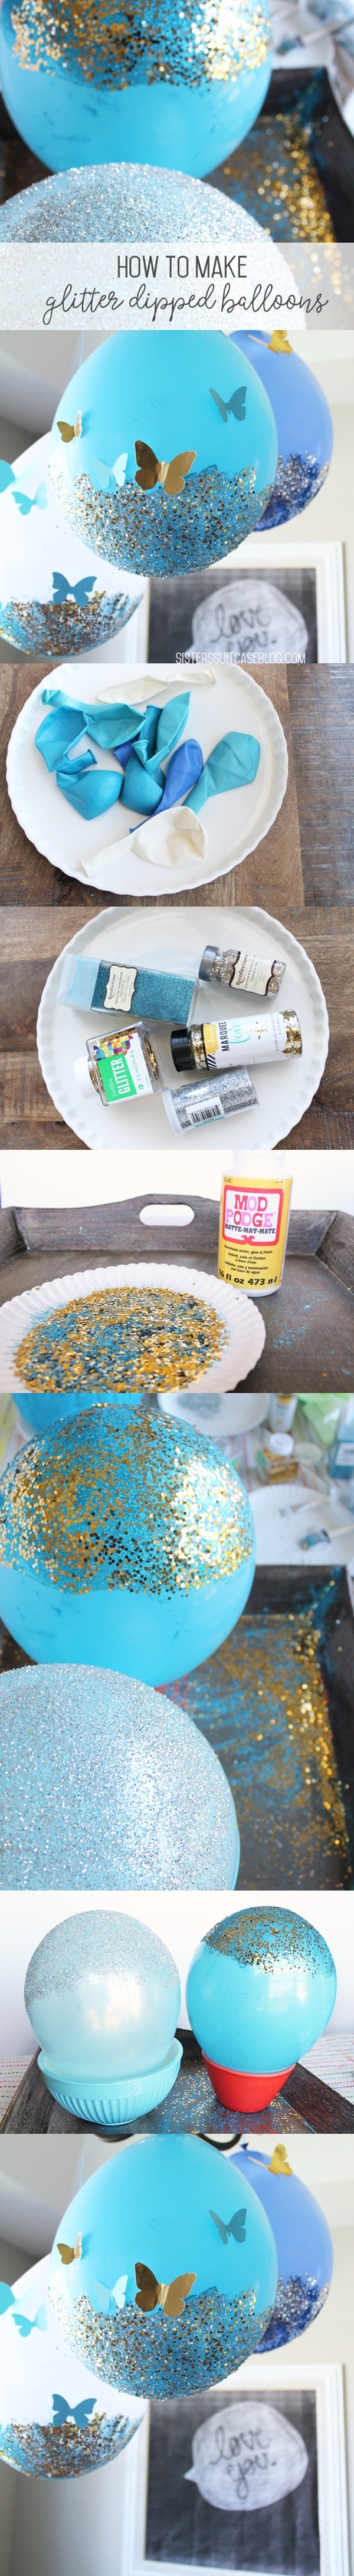 diy-filled-balloons-decoration-ideas-perfect-party-item